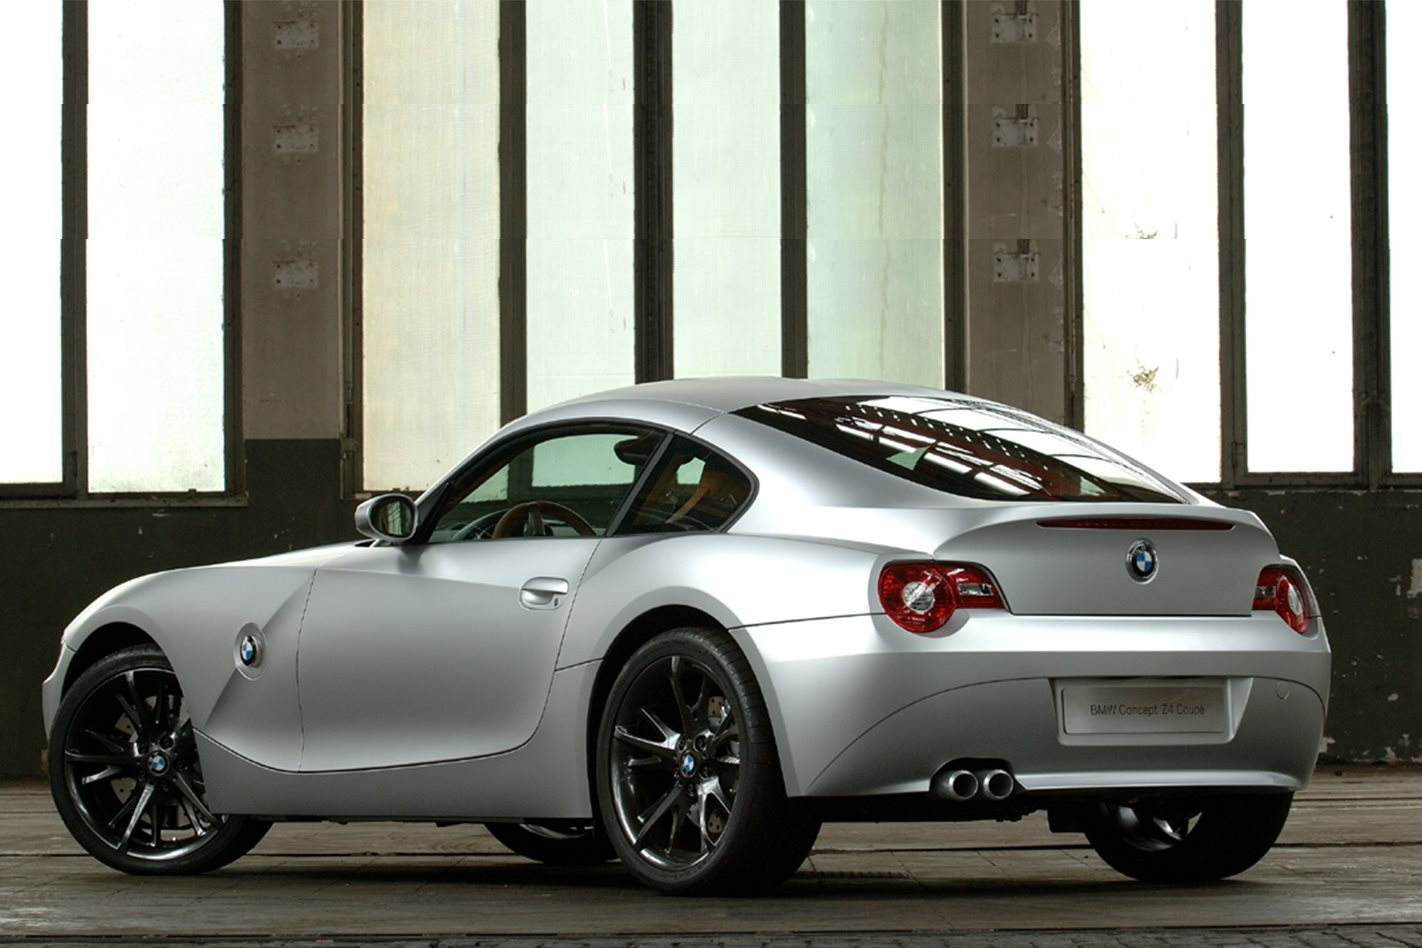 2006 Bmw Z4 Coupe First Look Classic Motor